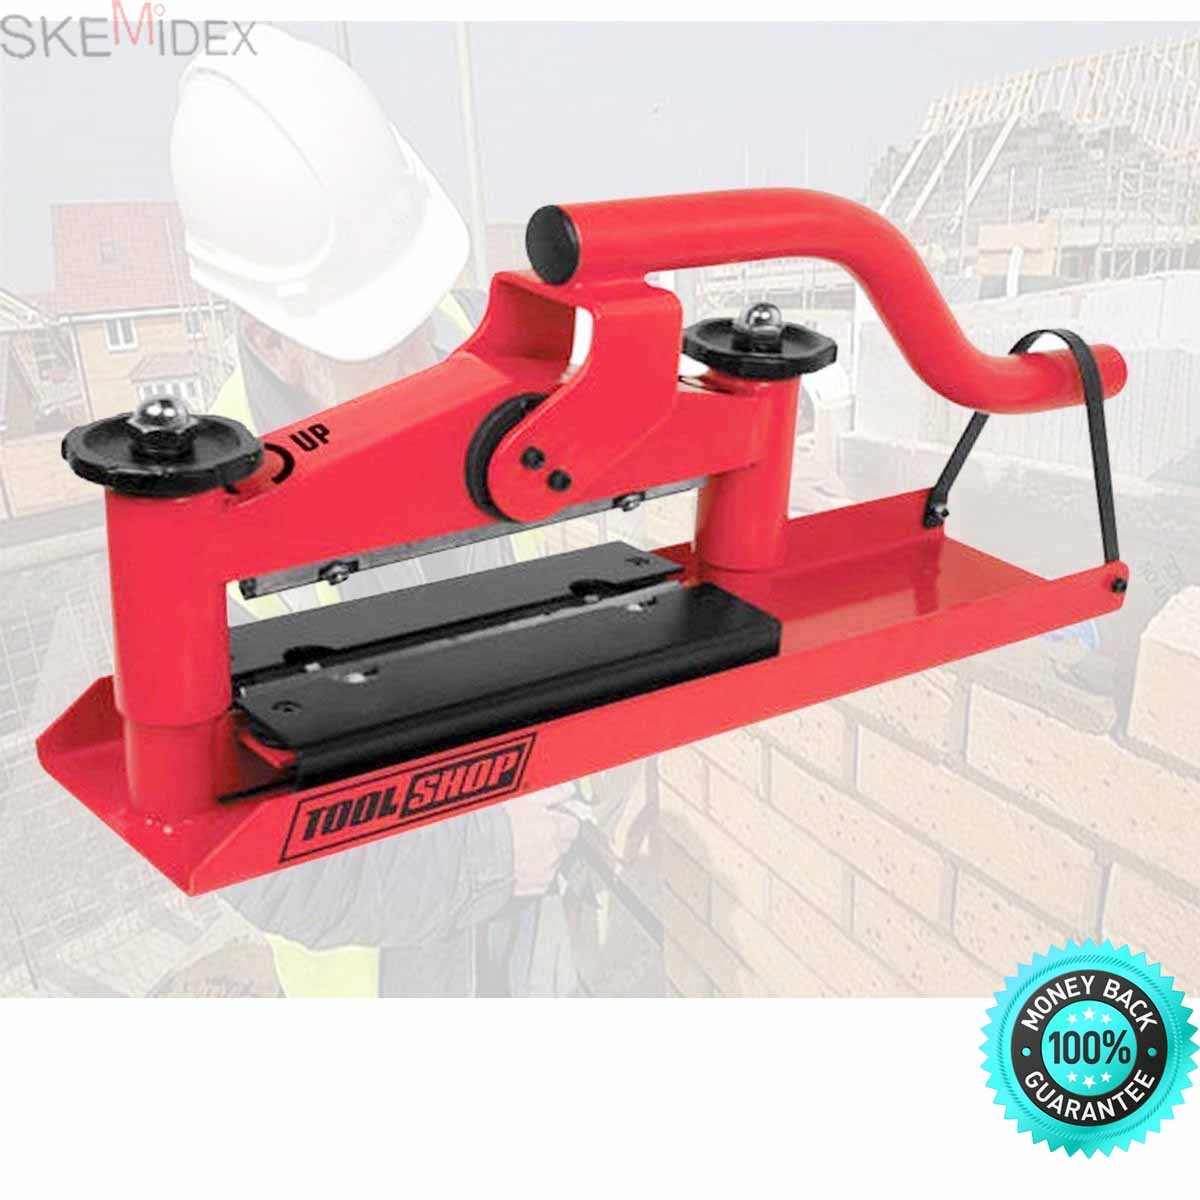 SKEMiDEX--- Cut 3.5'' Guillotine Concrete Block Brick Paver Splitter Cutter Great deal on a great concrete paver and block splitter in this brand new in original box and packaging by SKEMiDEX